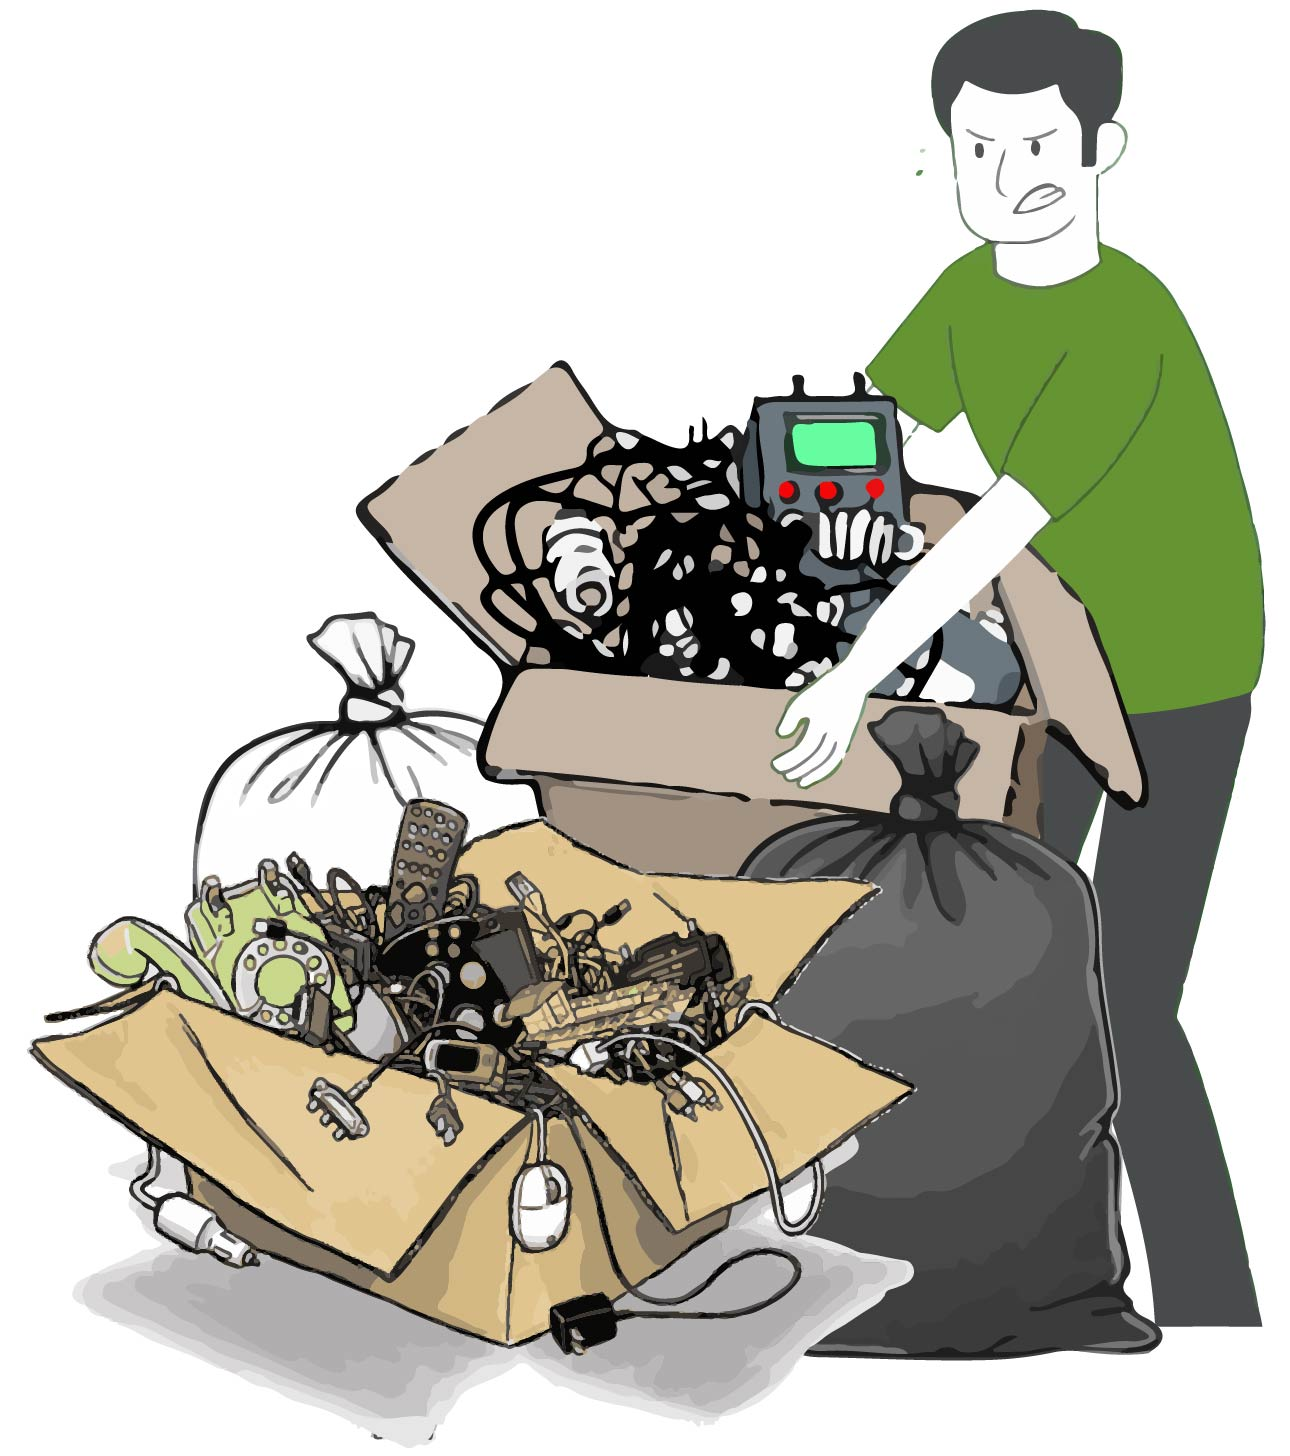 Affordable Junk Removal Services in Durham, CT